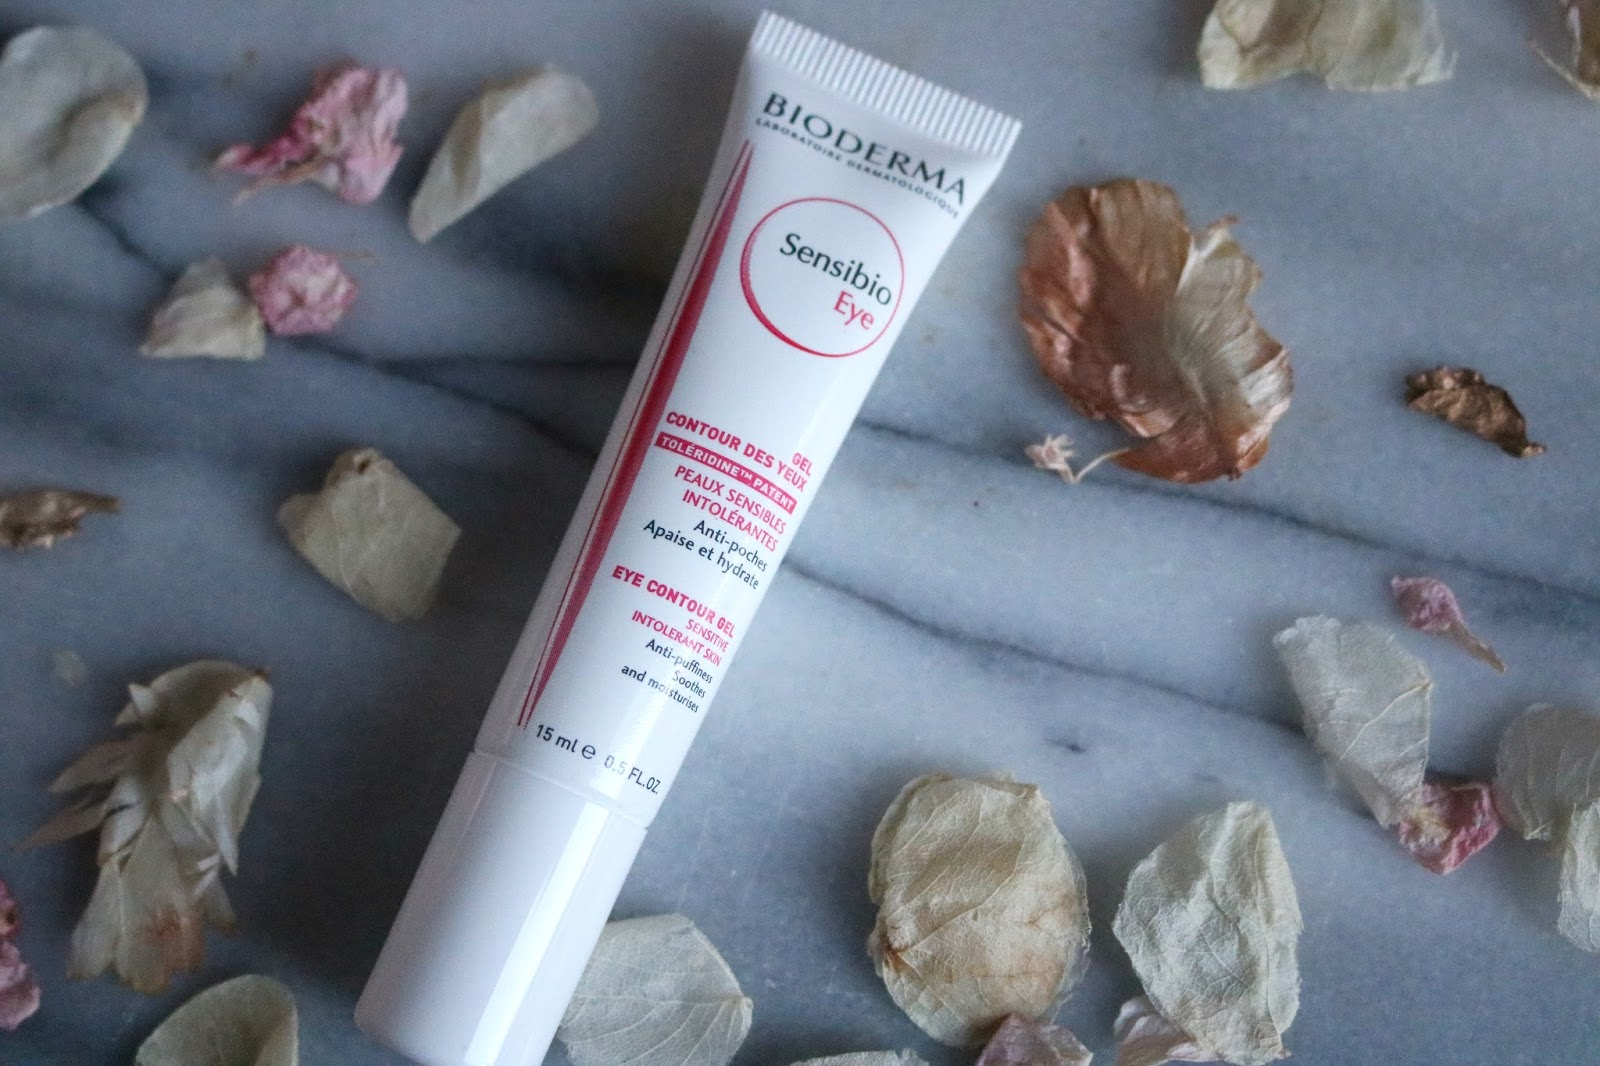 bioderma sensible eye contour gel